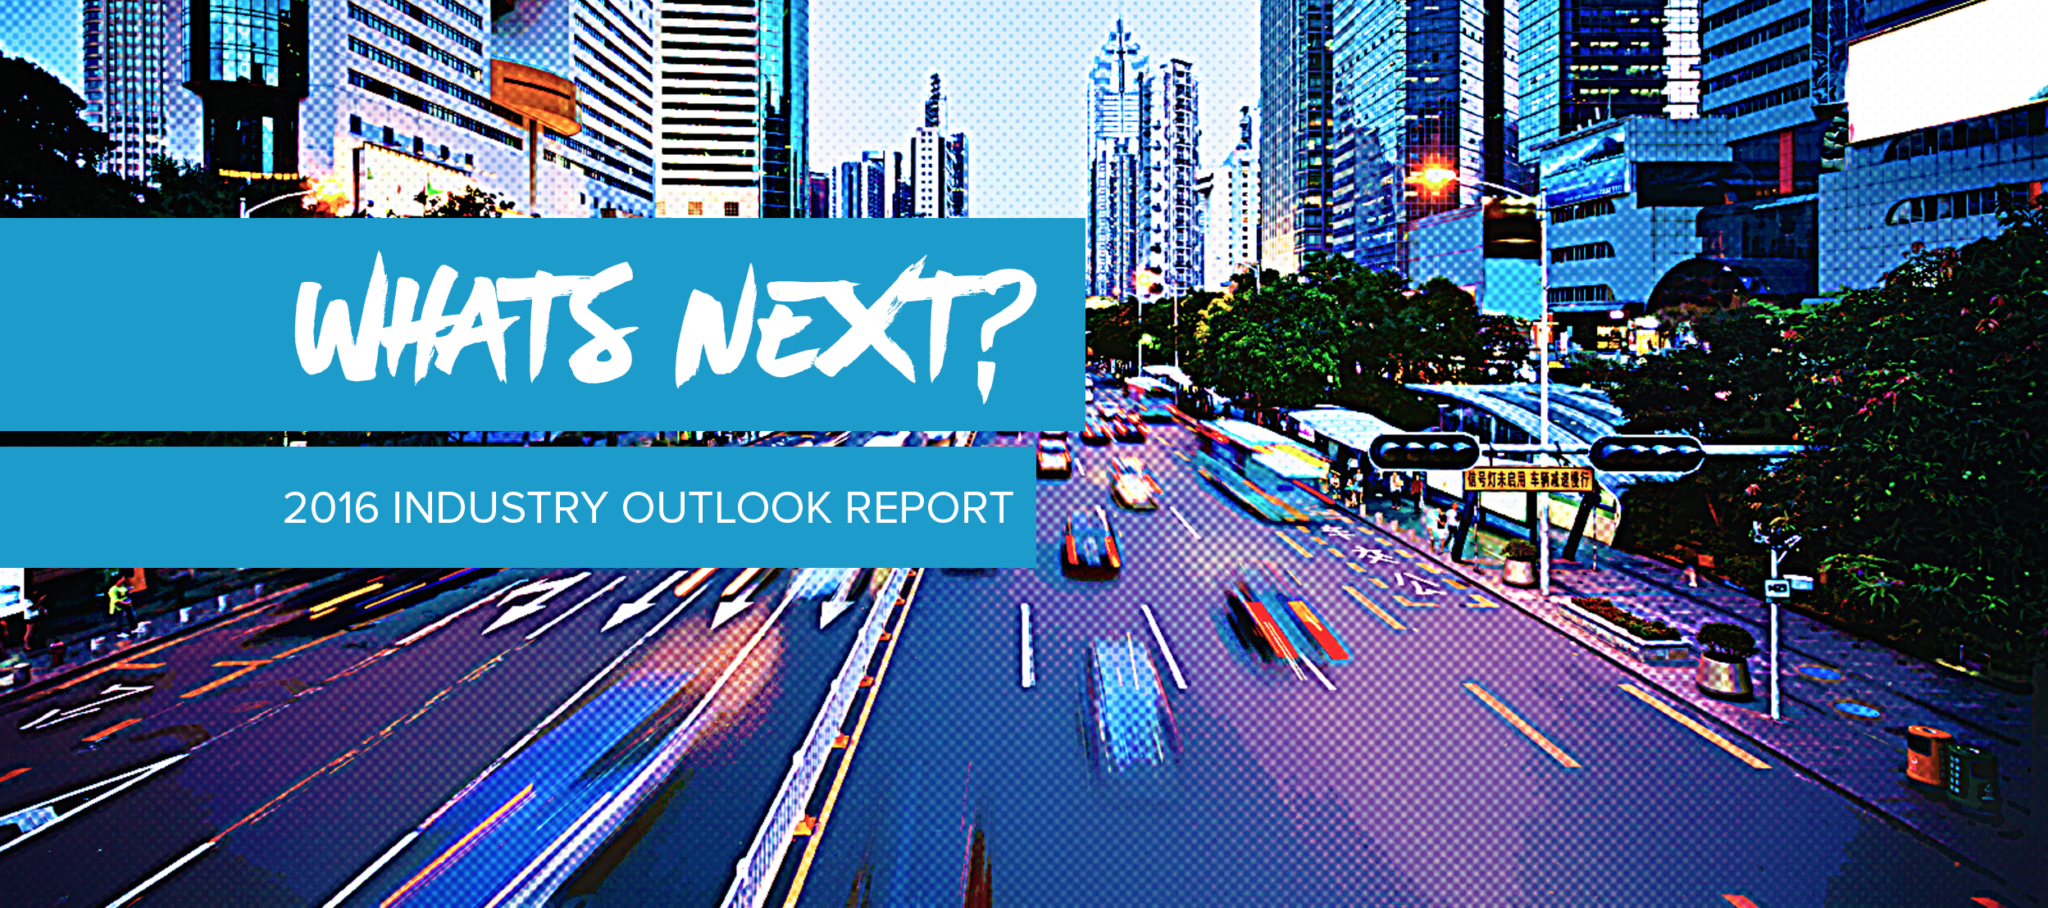 What's Next? 2016 Industry Outlook Report